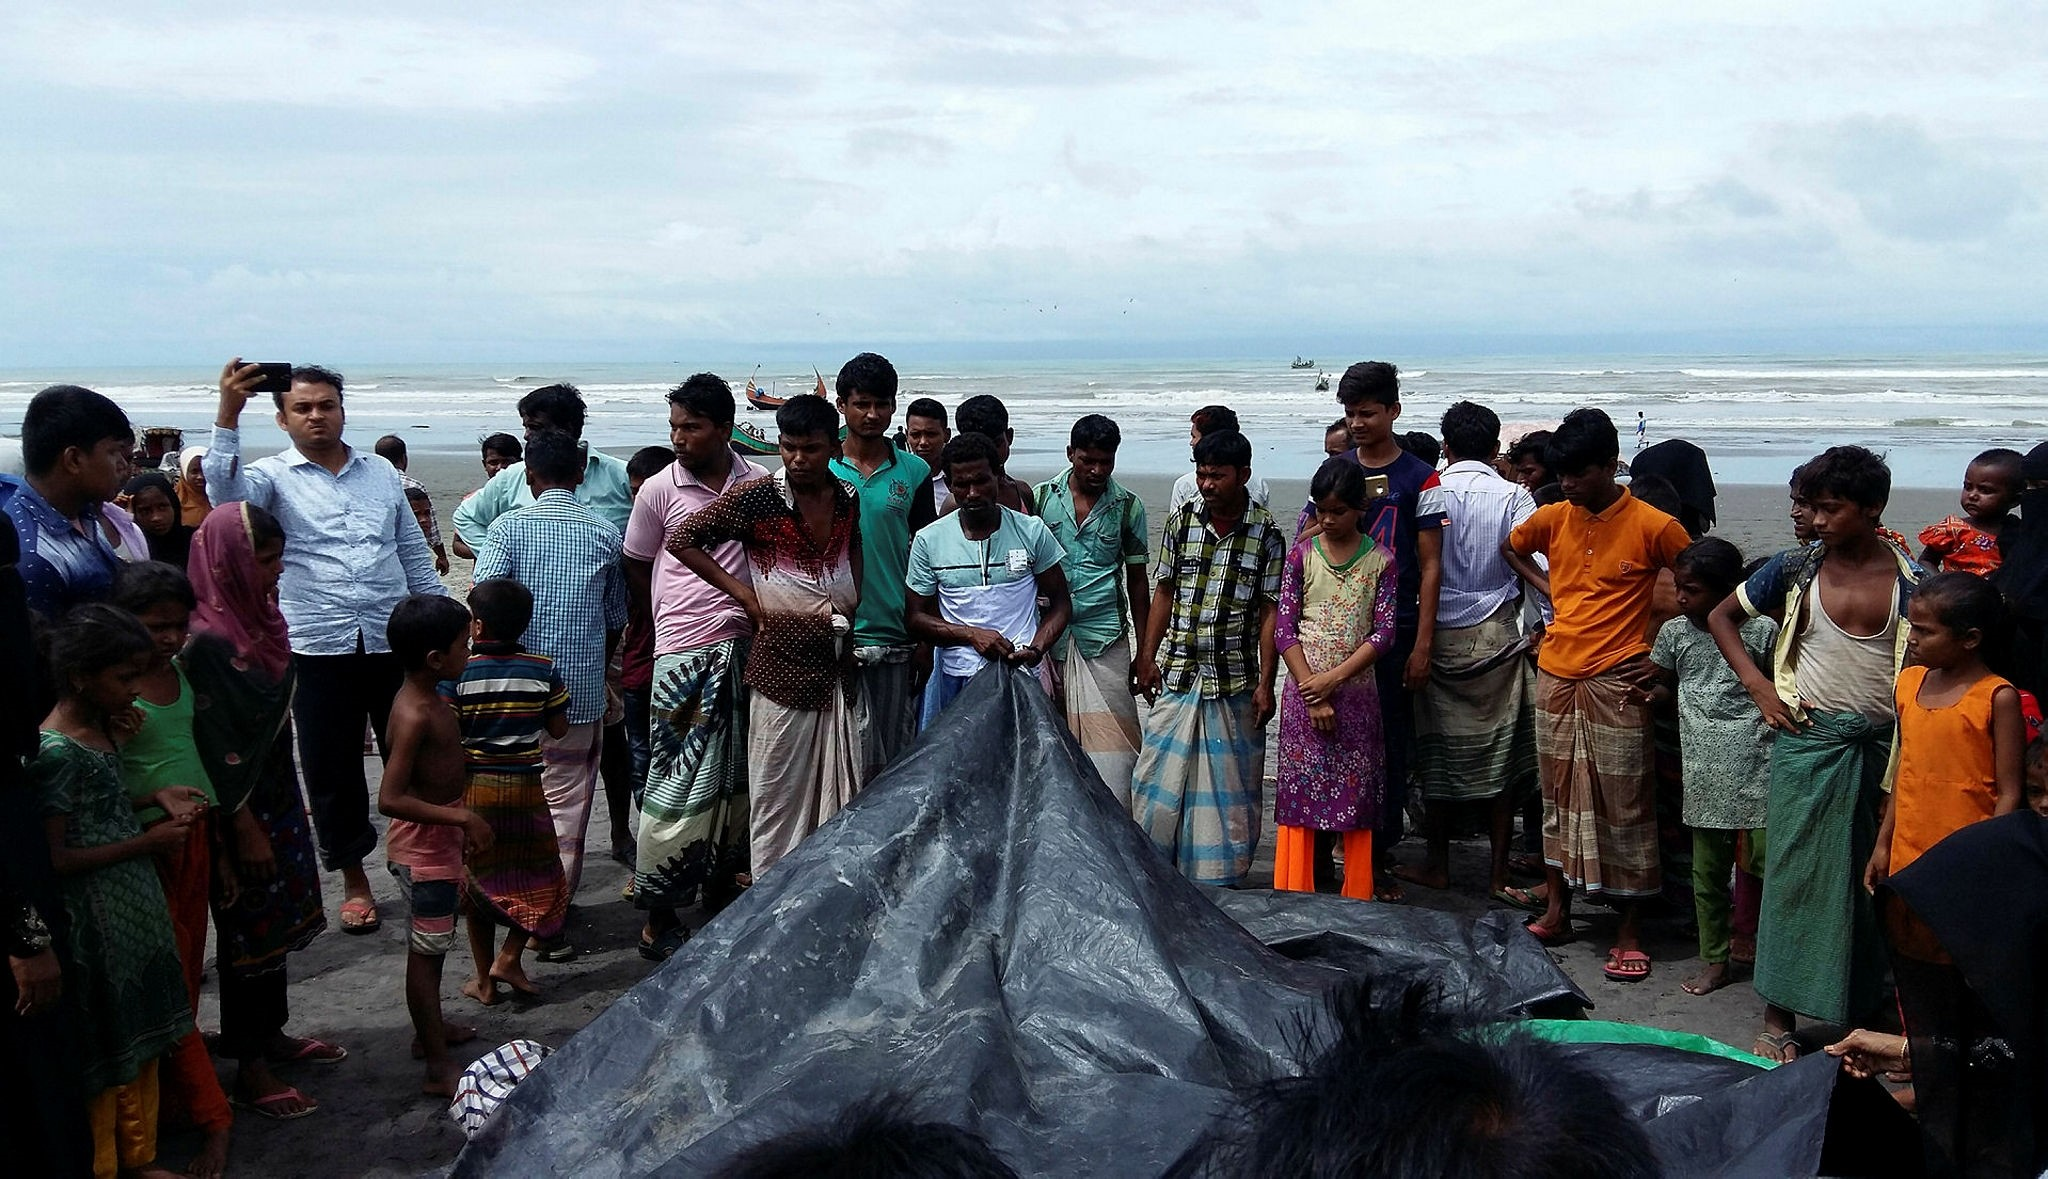 A man covers the bodies of Rohingya women and children who drowned after their boat capsized on the Naf River estuary near Teknaf, Aug. 31.